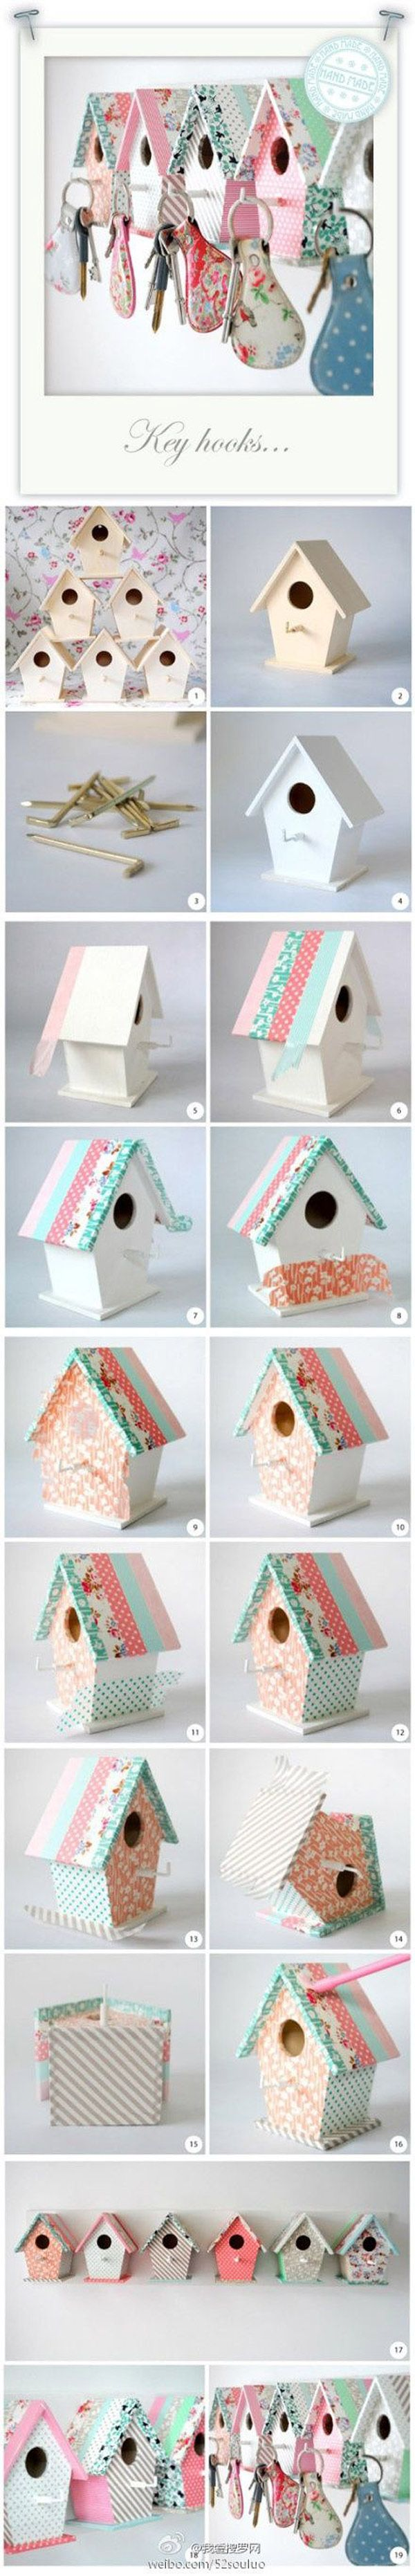 Proyectos con washi tape: decorar casitas de madera para las llaves